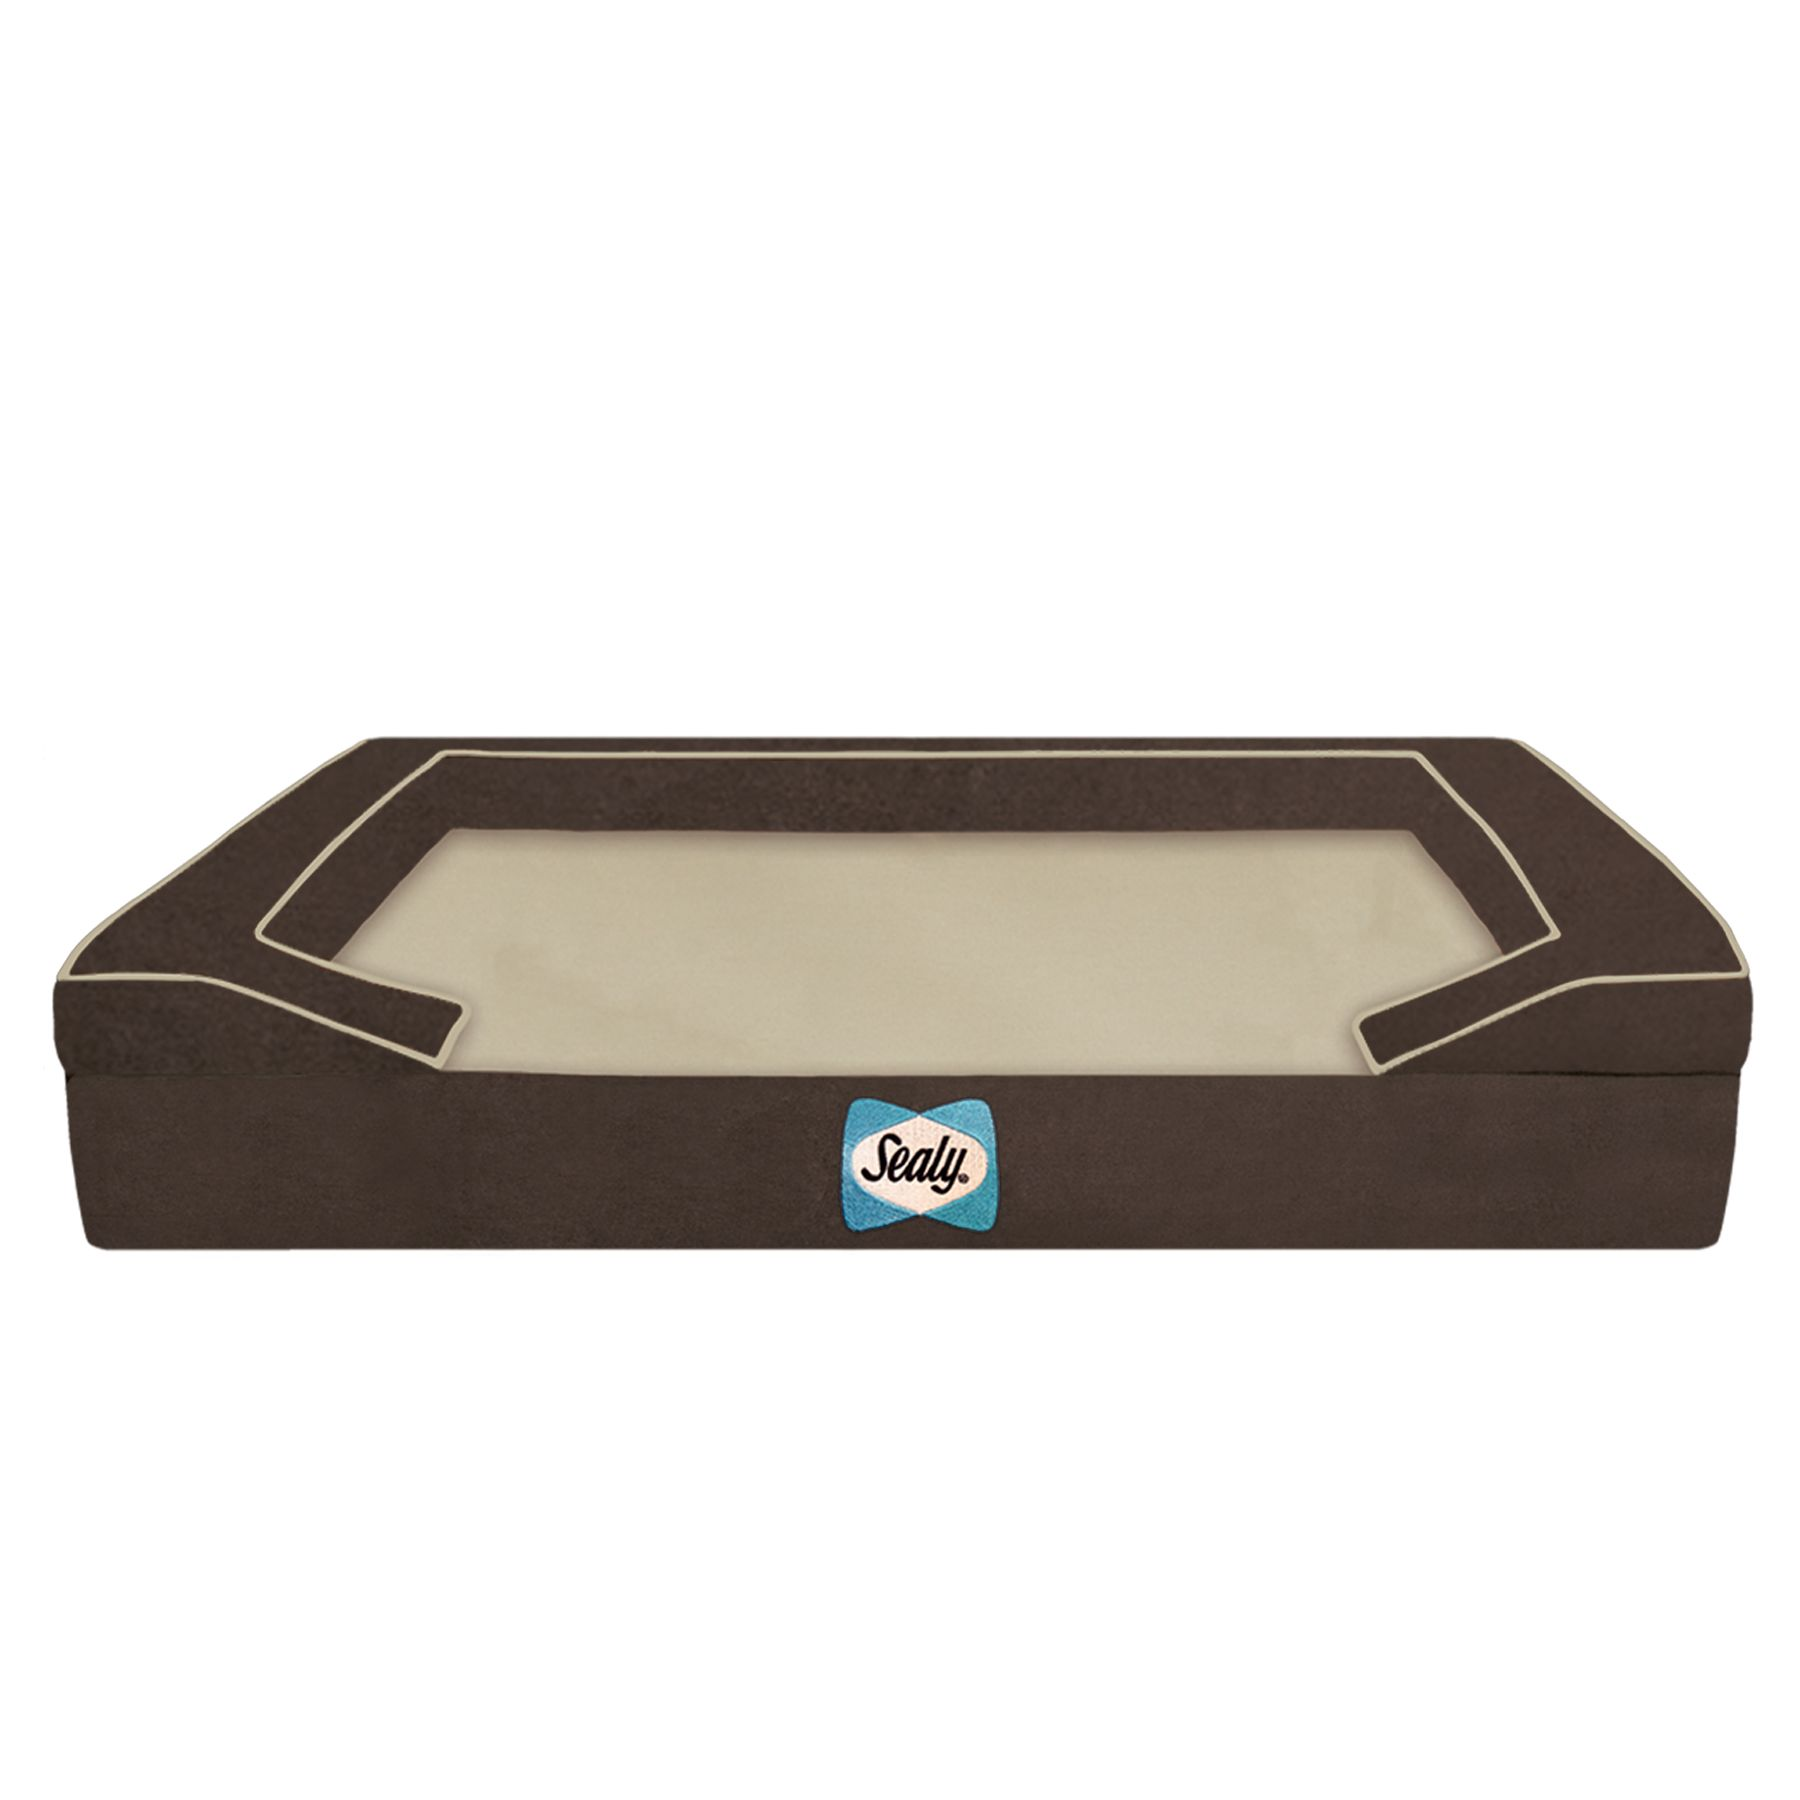 Sealy Premium Bolster Dog Bed Size 48l X 38w X 8h Autumn Brown